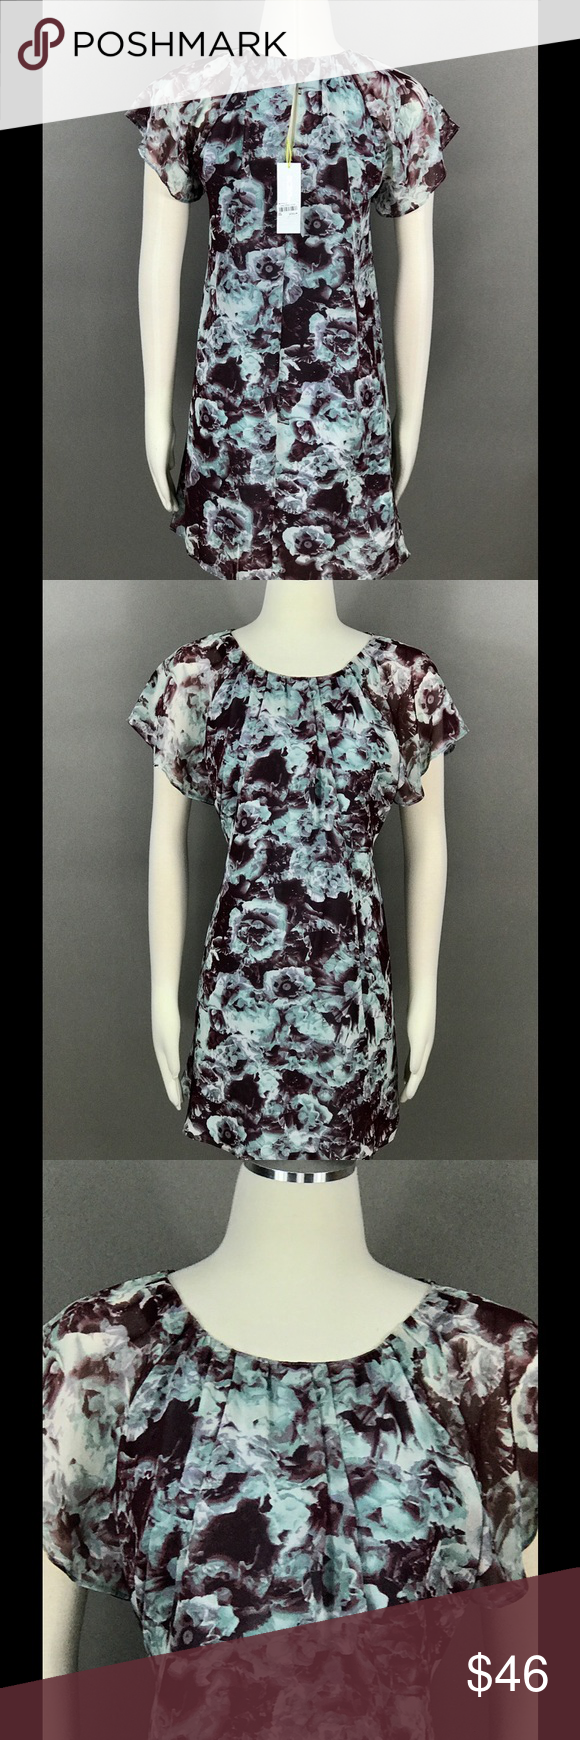 BCBGeneration Dress Sz S Floral Chiffon Layered BCBGeneration Blue Brown Dress Sz S Floral Print Chiffon Layered Pleated Flutter Sleeve Lined NEW BCBGeneration Dresses Mini